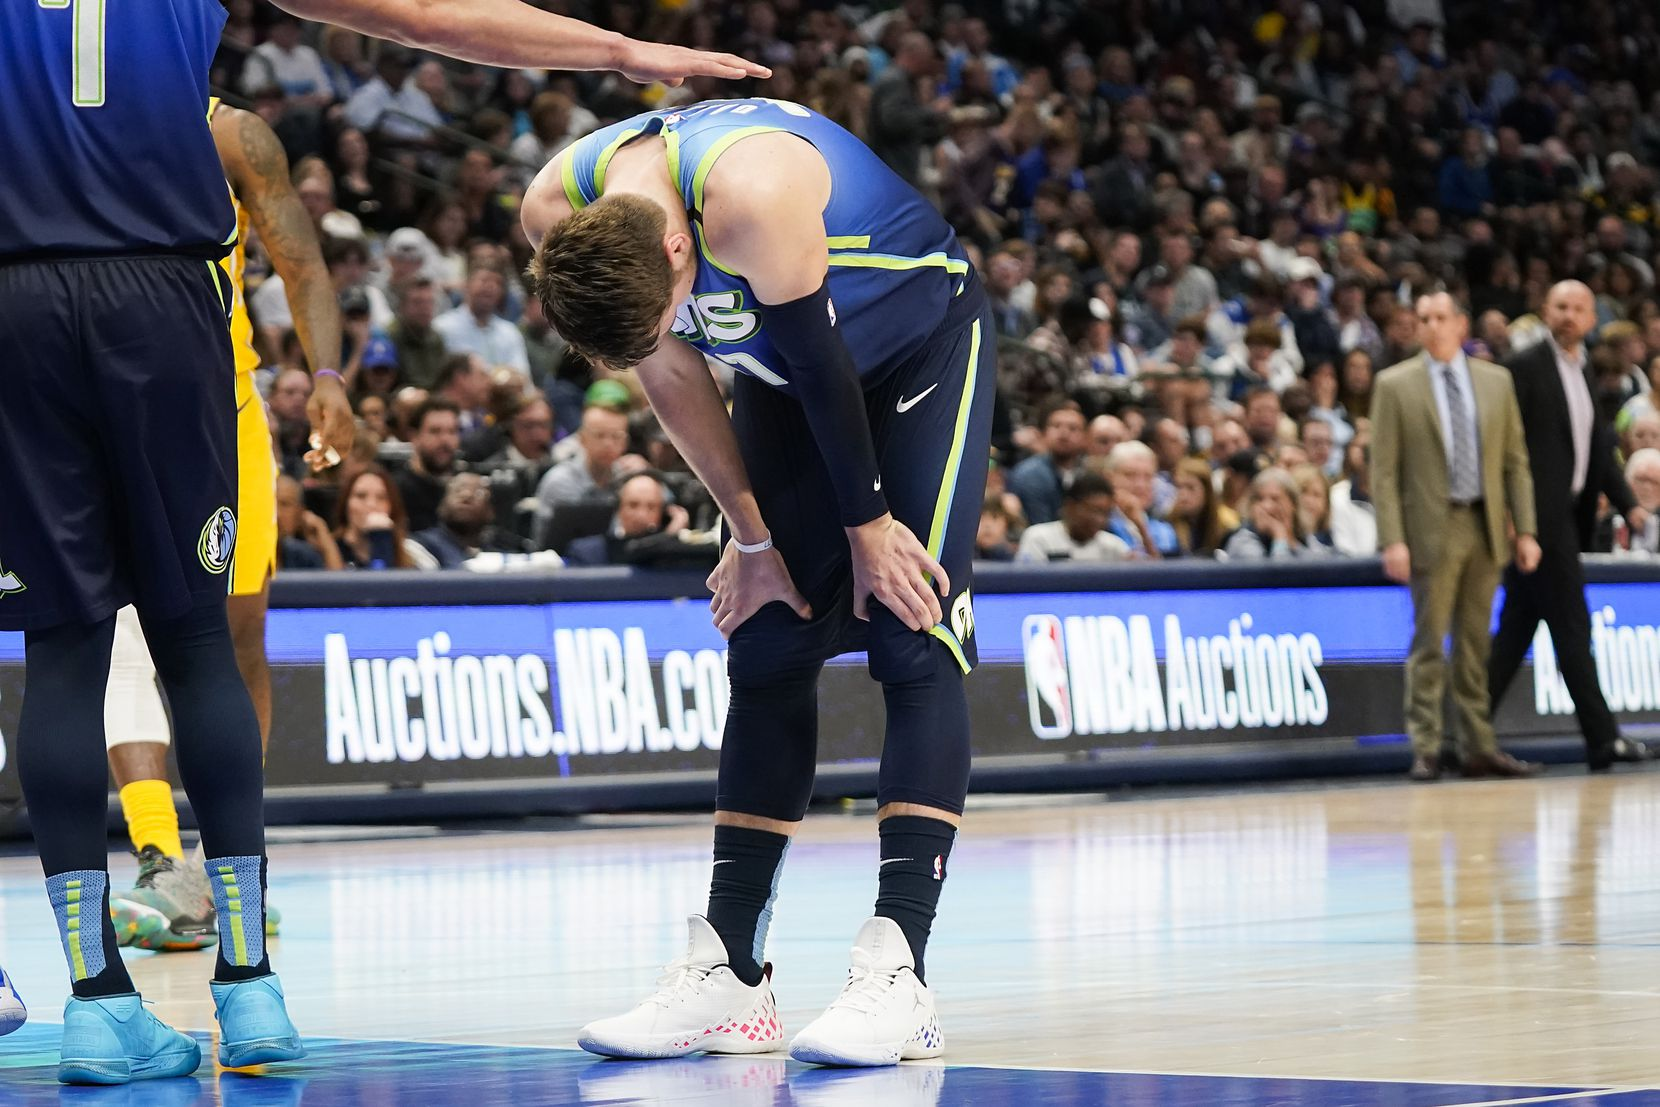 Dallas Mavericks guard Luka Doncic reacts after missing a free throw during the first half of an NBA basketball game against the Los Angeles Lakers at American Airlines Center on Friday, Jan. 10, 2020, in Dallas.